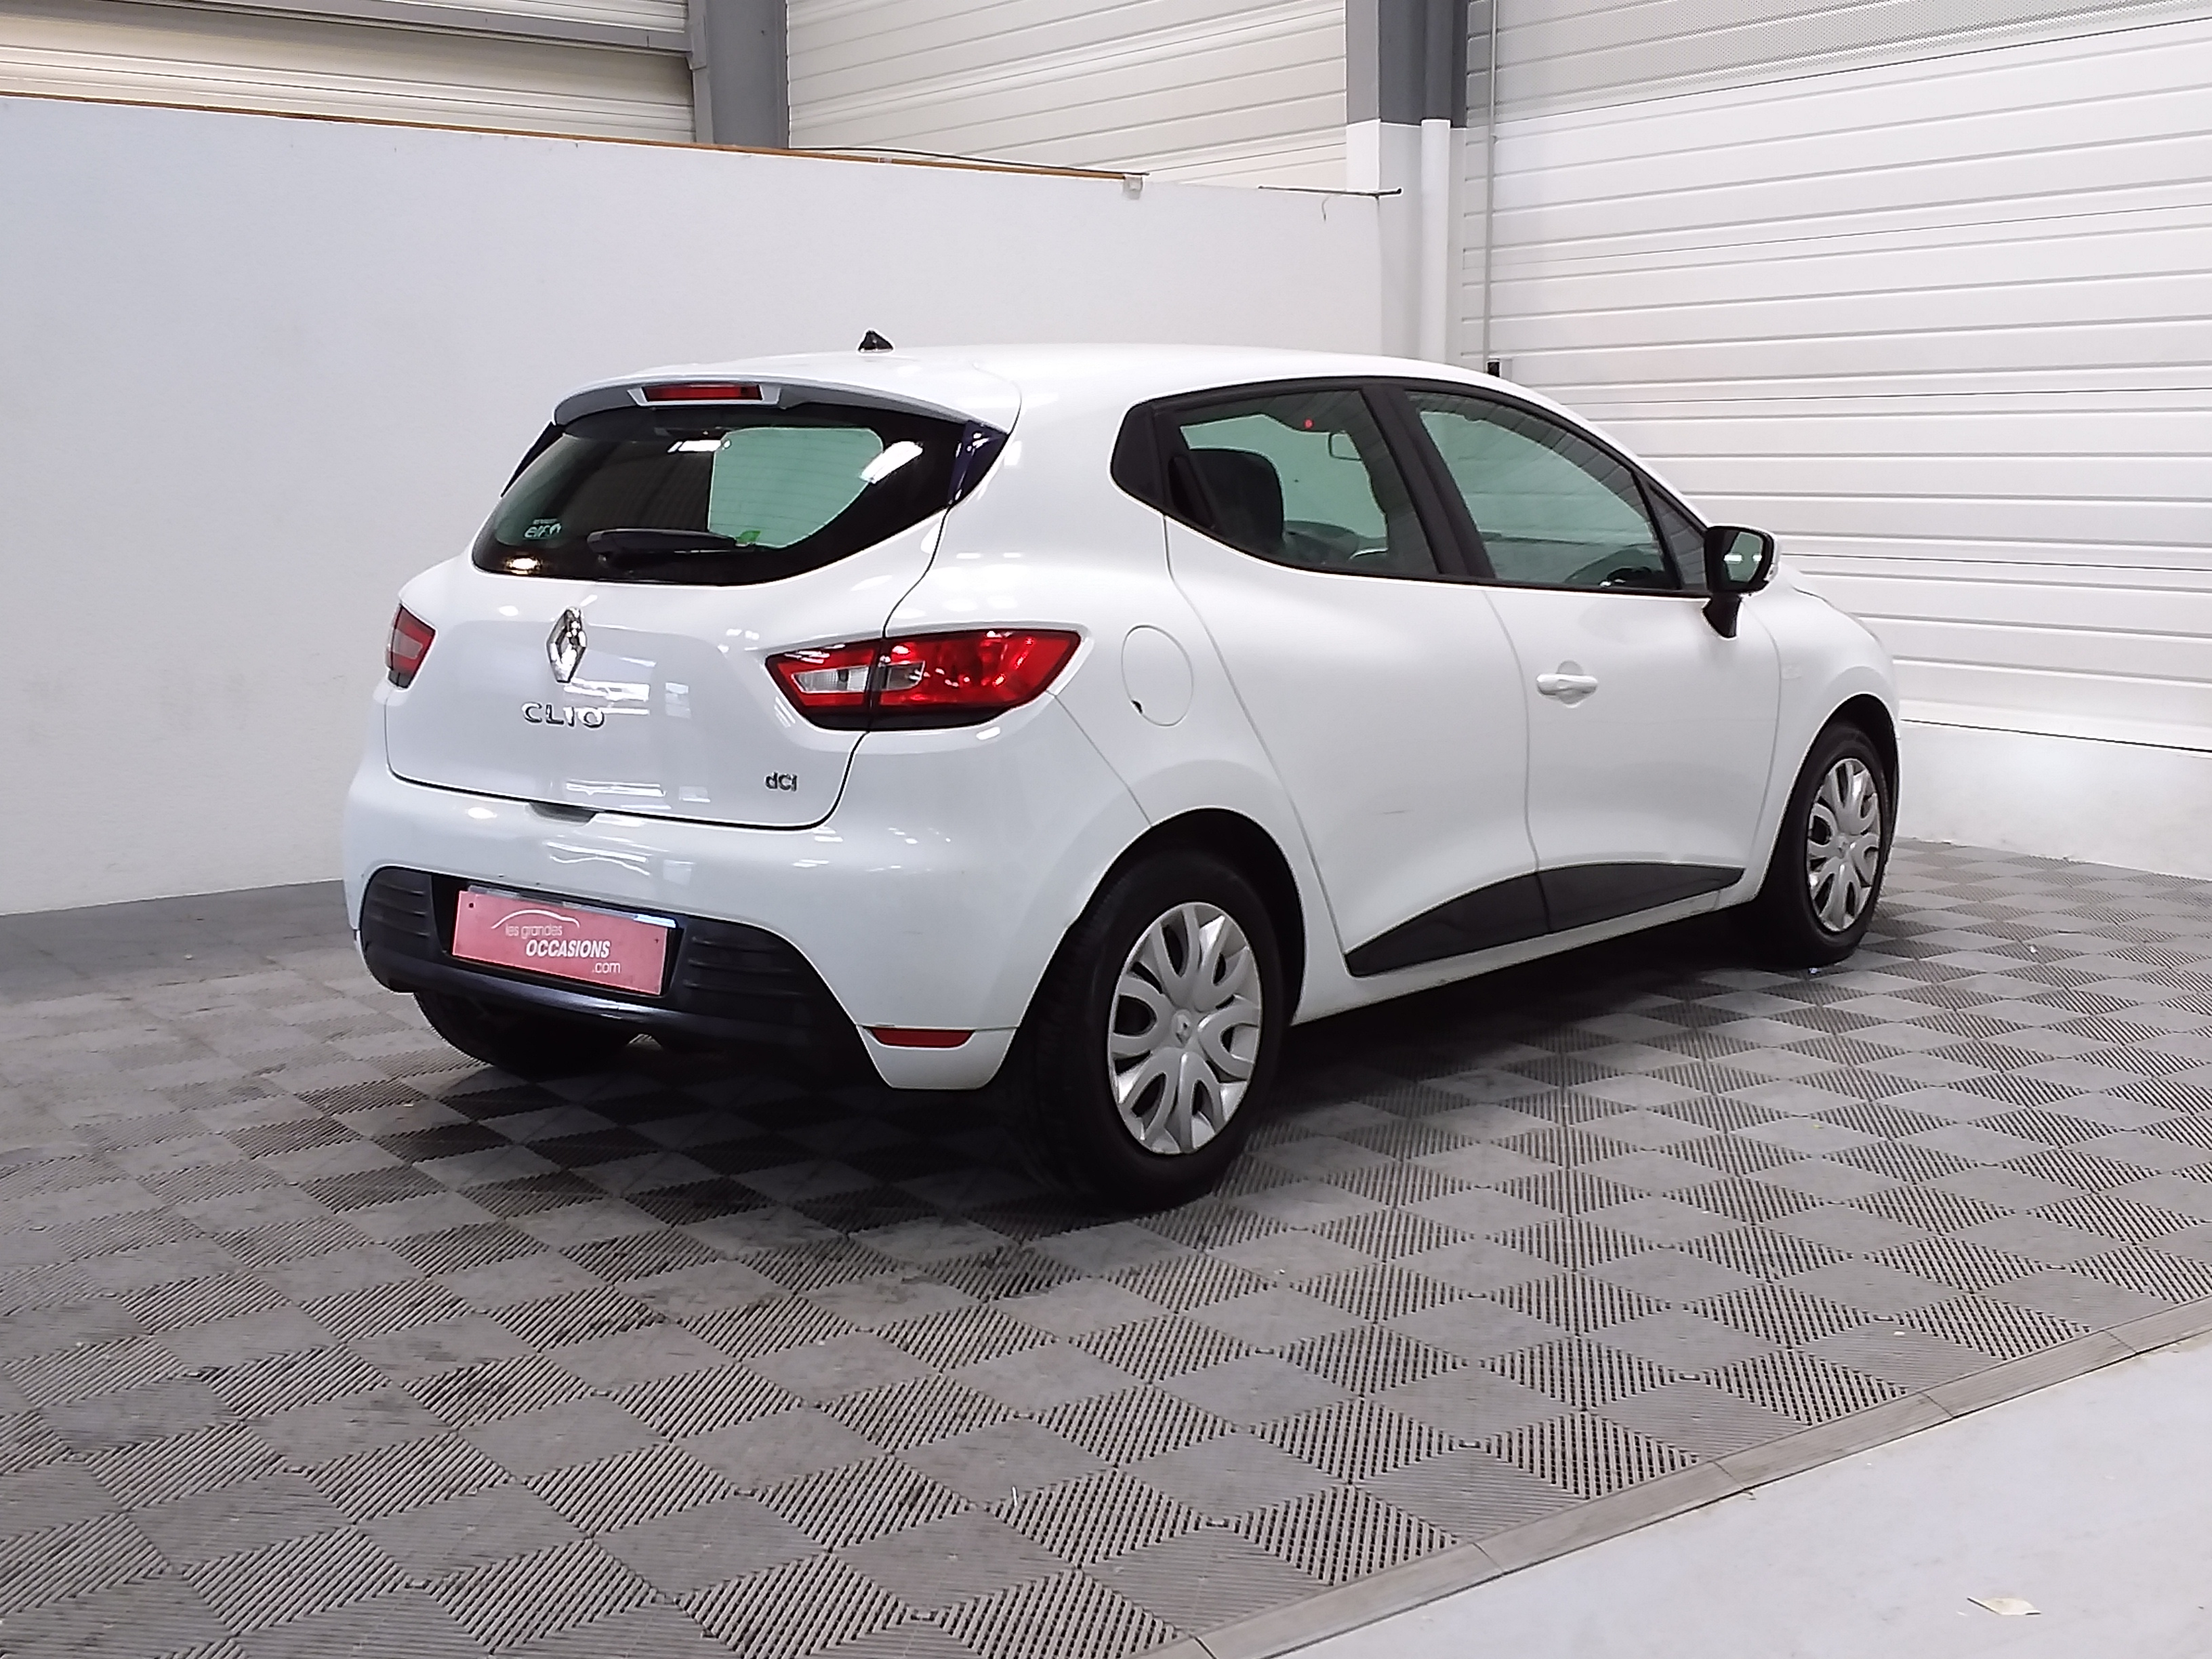 RENAULT CLIO IV SOCIETE 2017 à 5900 € - Photo n°3